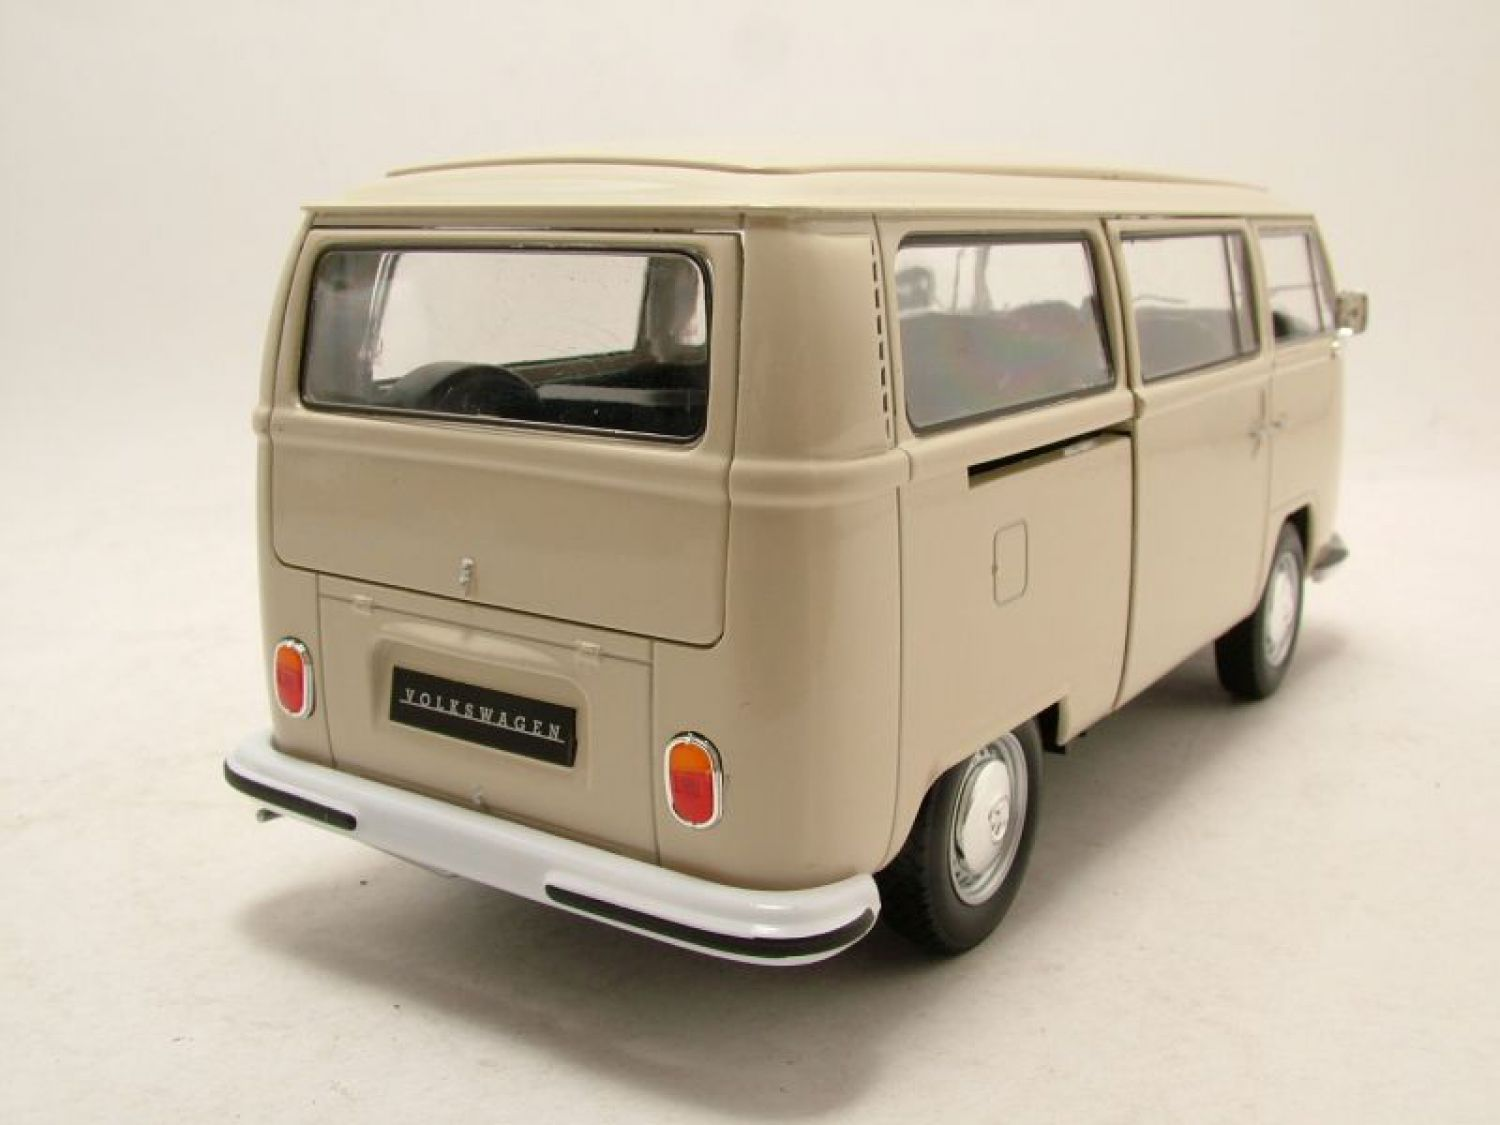 vw bus t2 1972 creme modellauto 1 24 welly ebay. Black Bedroom Furniture Sets. Home Design Ideas